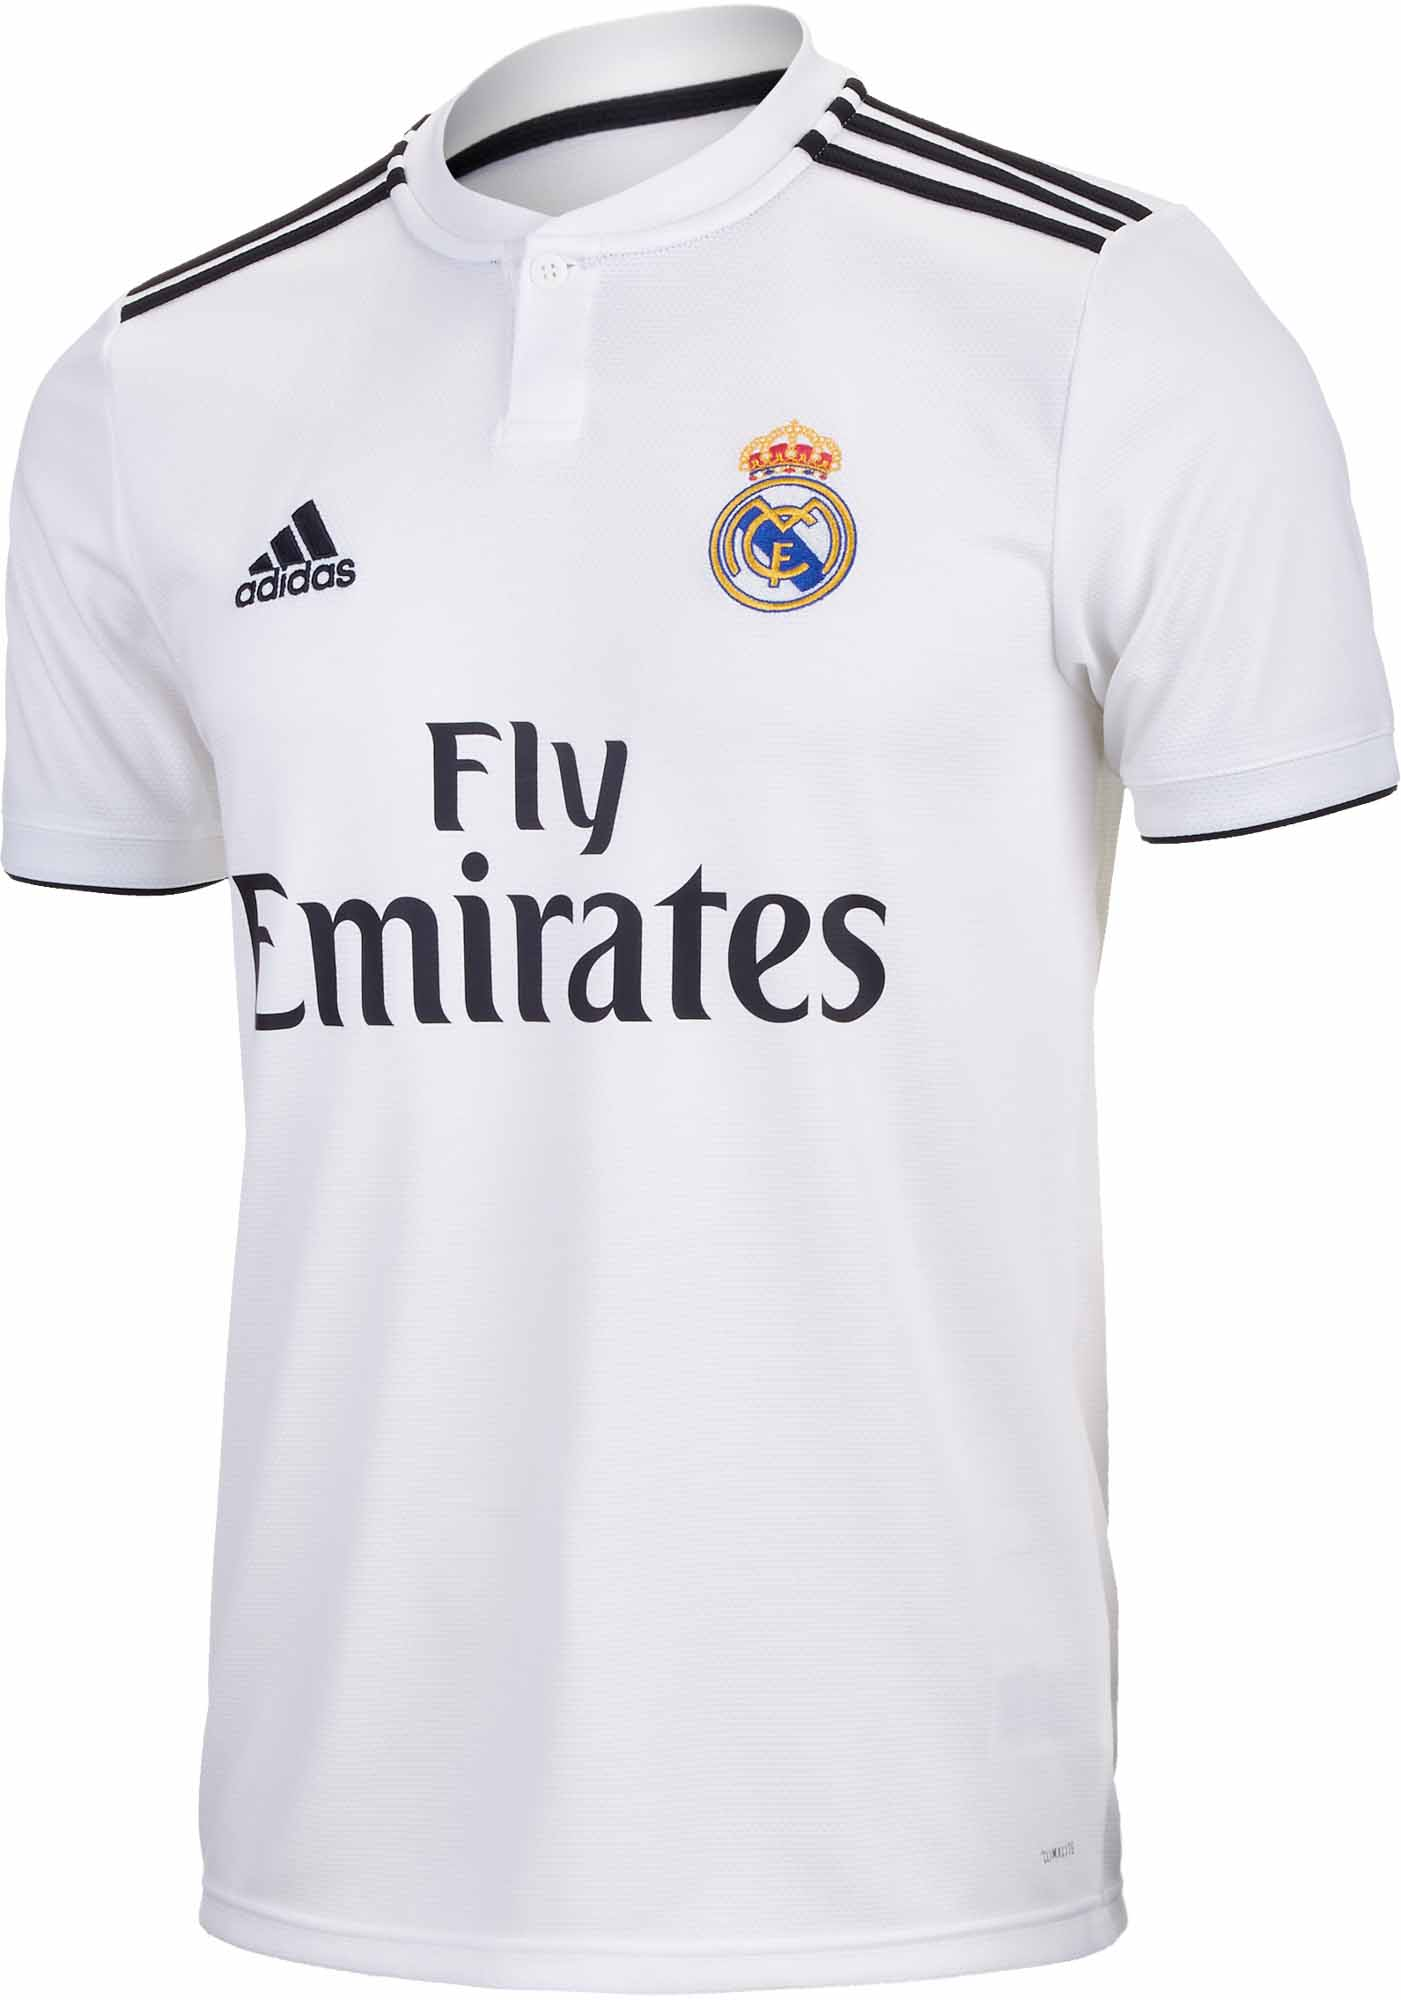 innovative design a0947 18f3f 2018/19 adidas Real Madrid Home Jersey